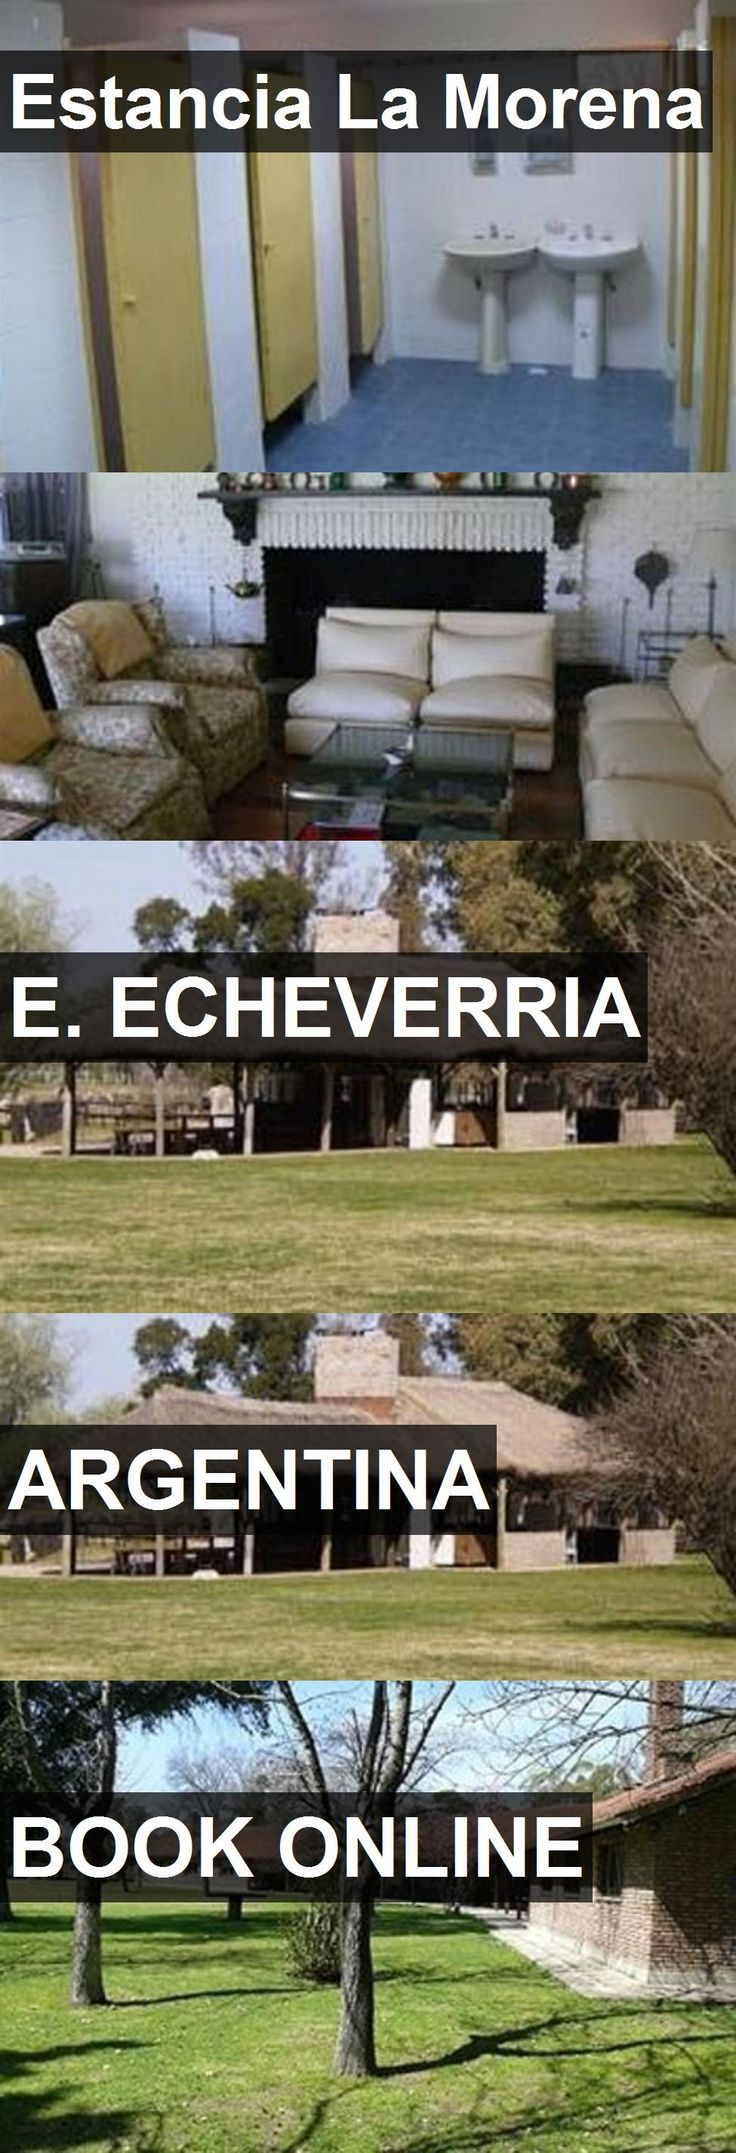 Hotel Estancia La Morena in E. Echeverria, Argentina. For more information, photos, reviews and best prices please follow the link. #Argentina #E.Echeverria #EstanciaLaMorena #hotel #travel #vacation